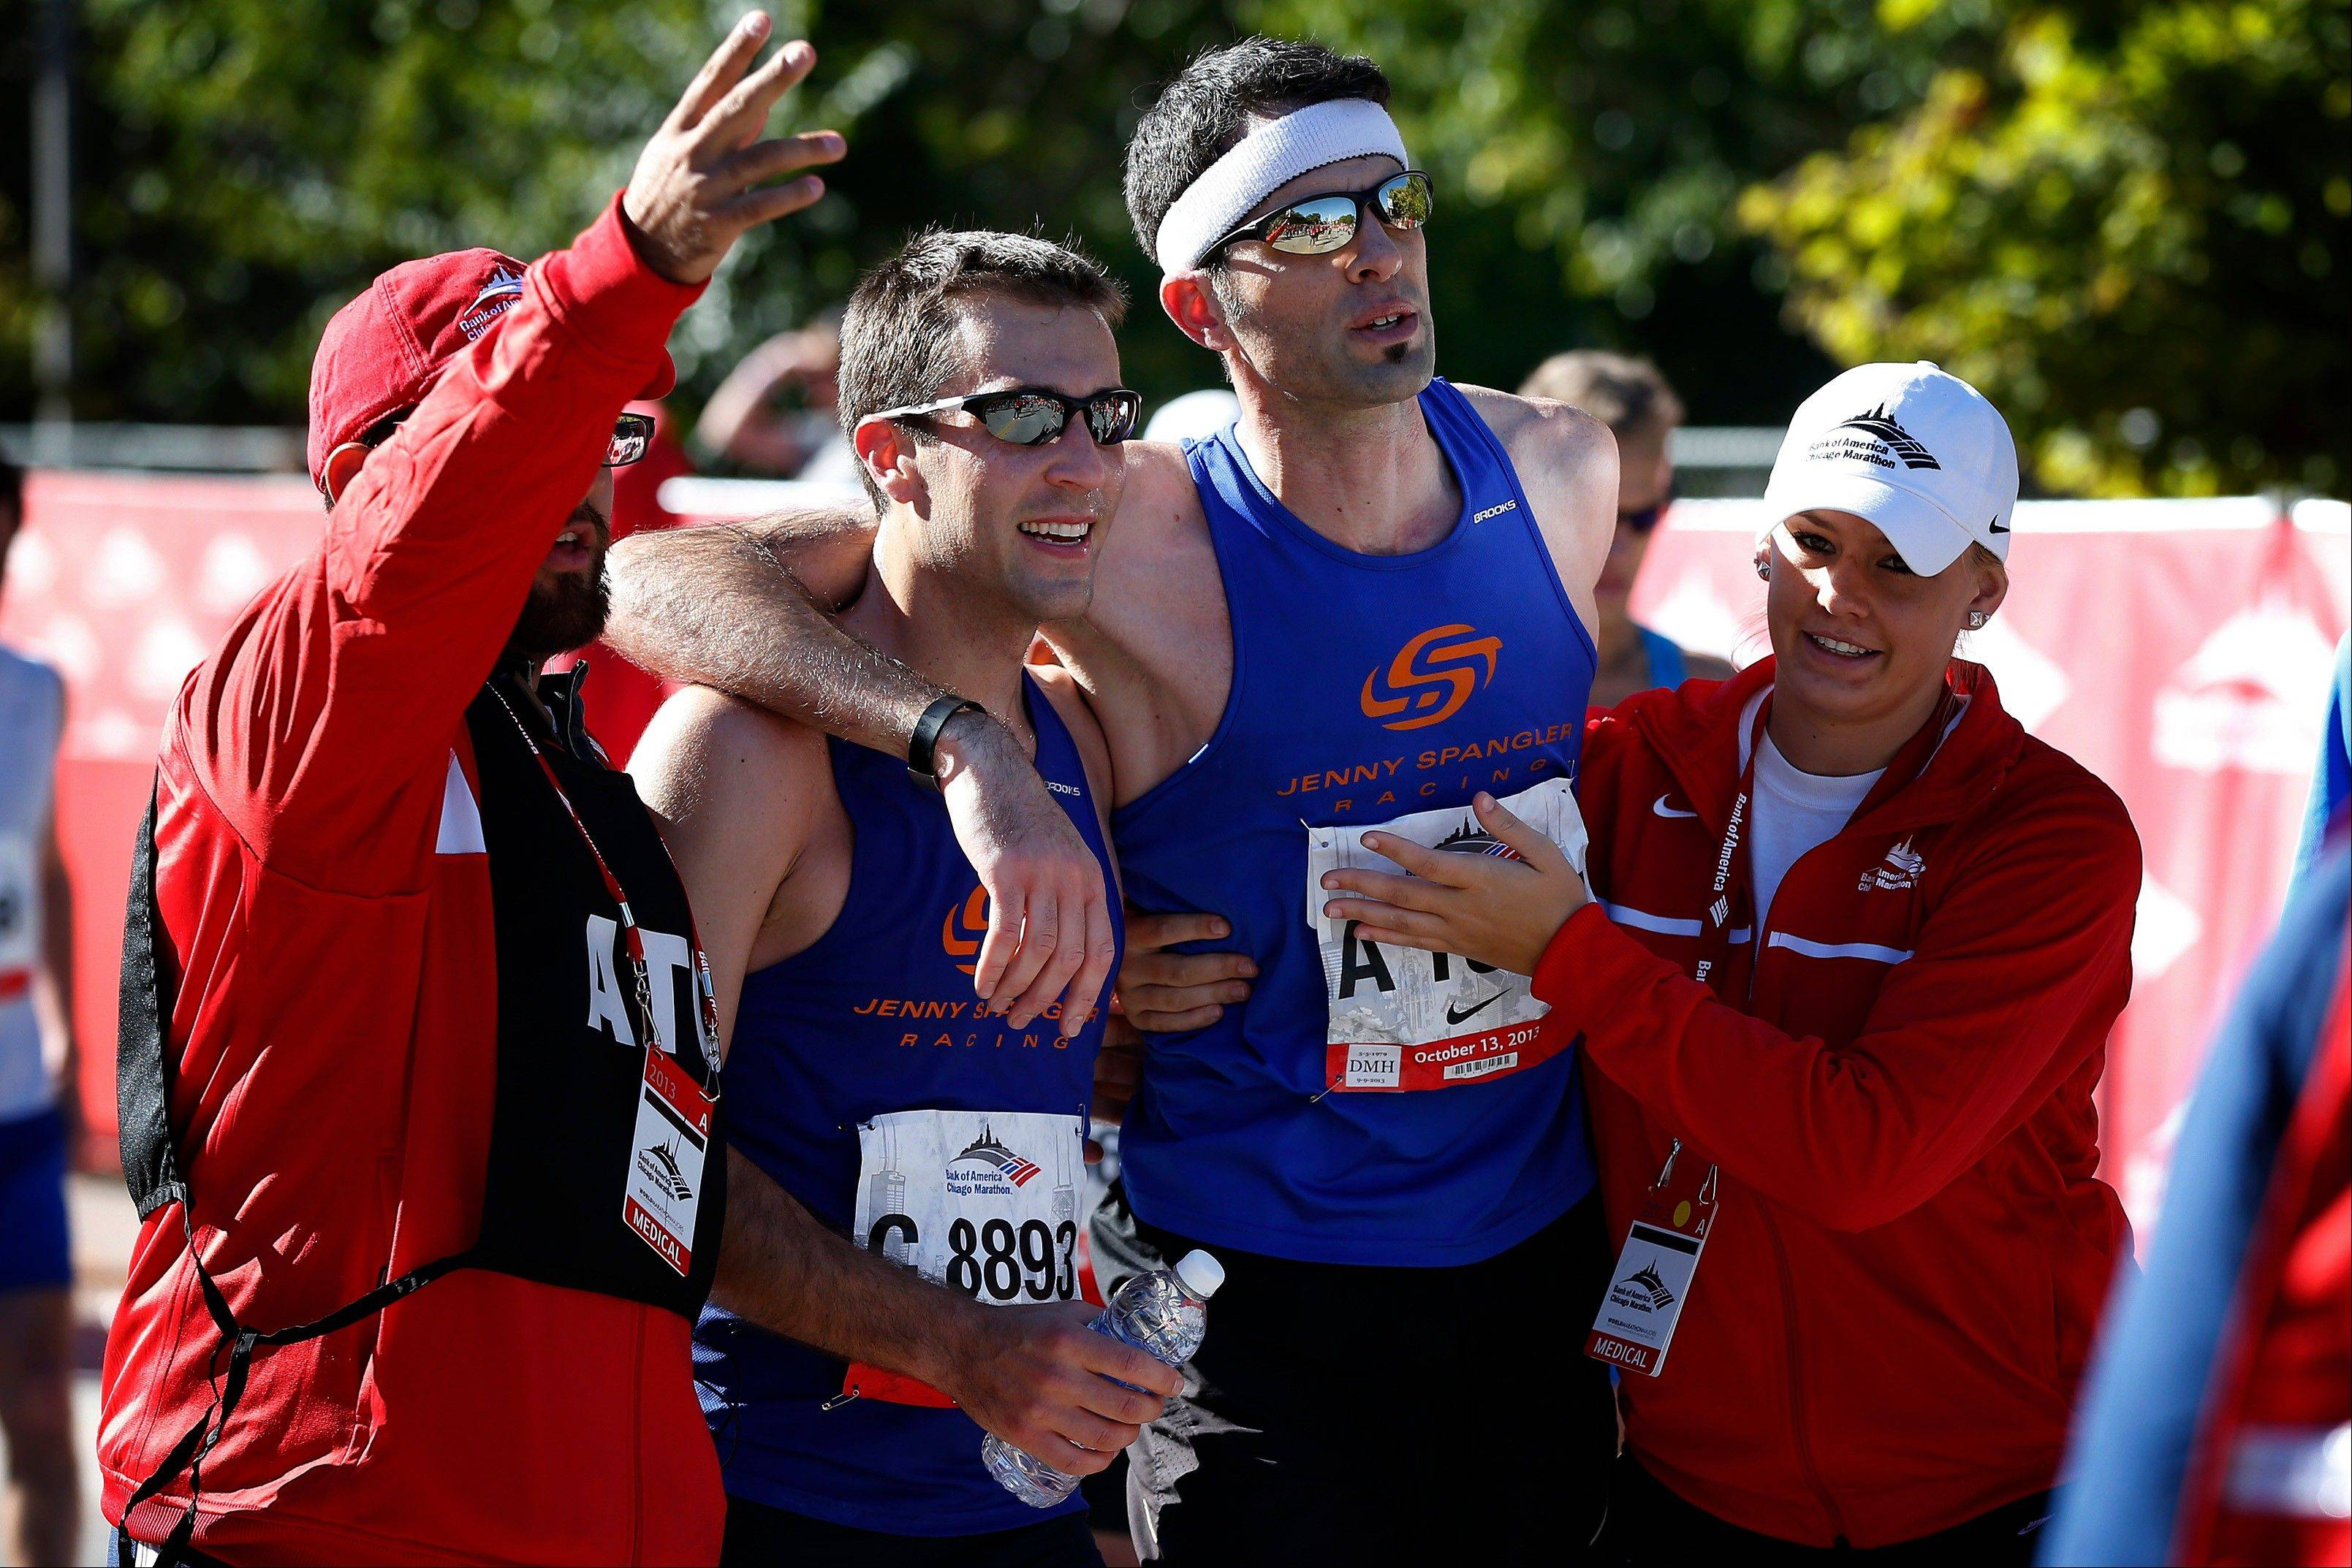 Chicago Marathon keeps Boston in mind